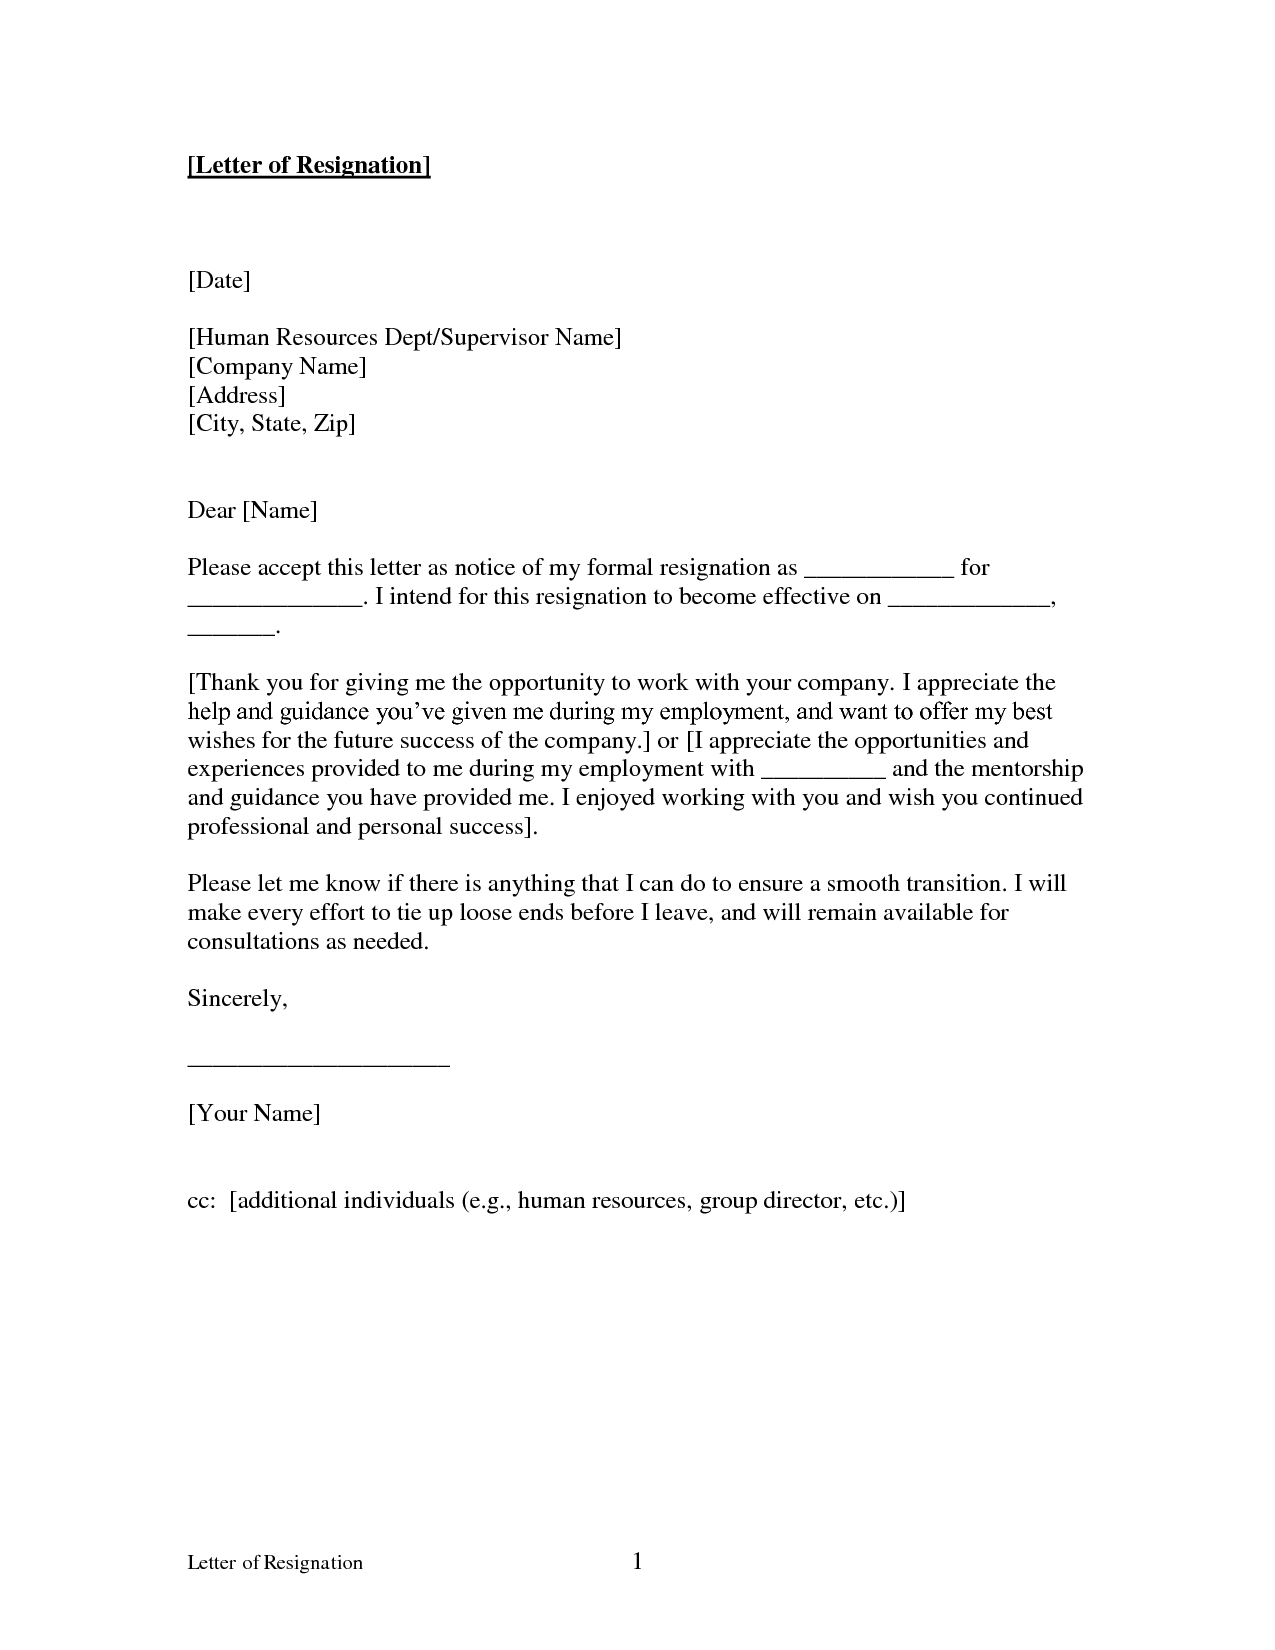 letter of resign sample letter resignation doc template bunch ideas